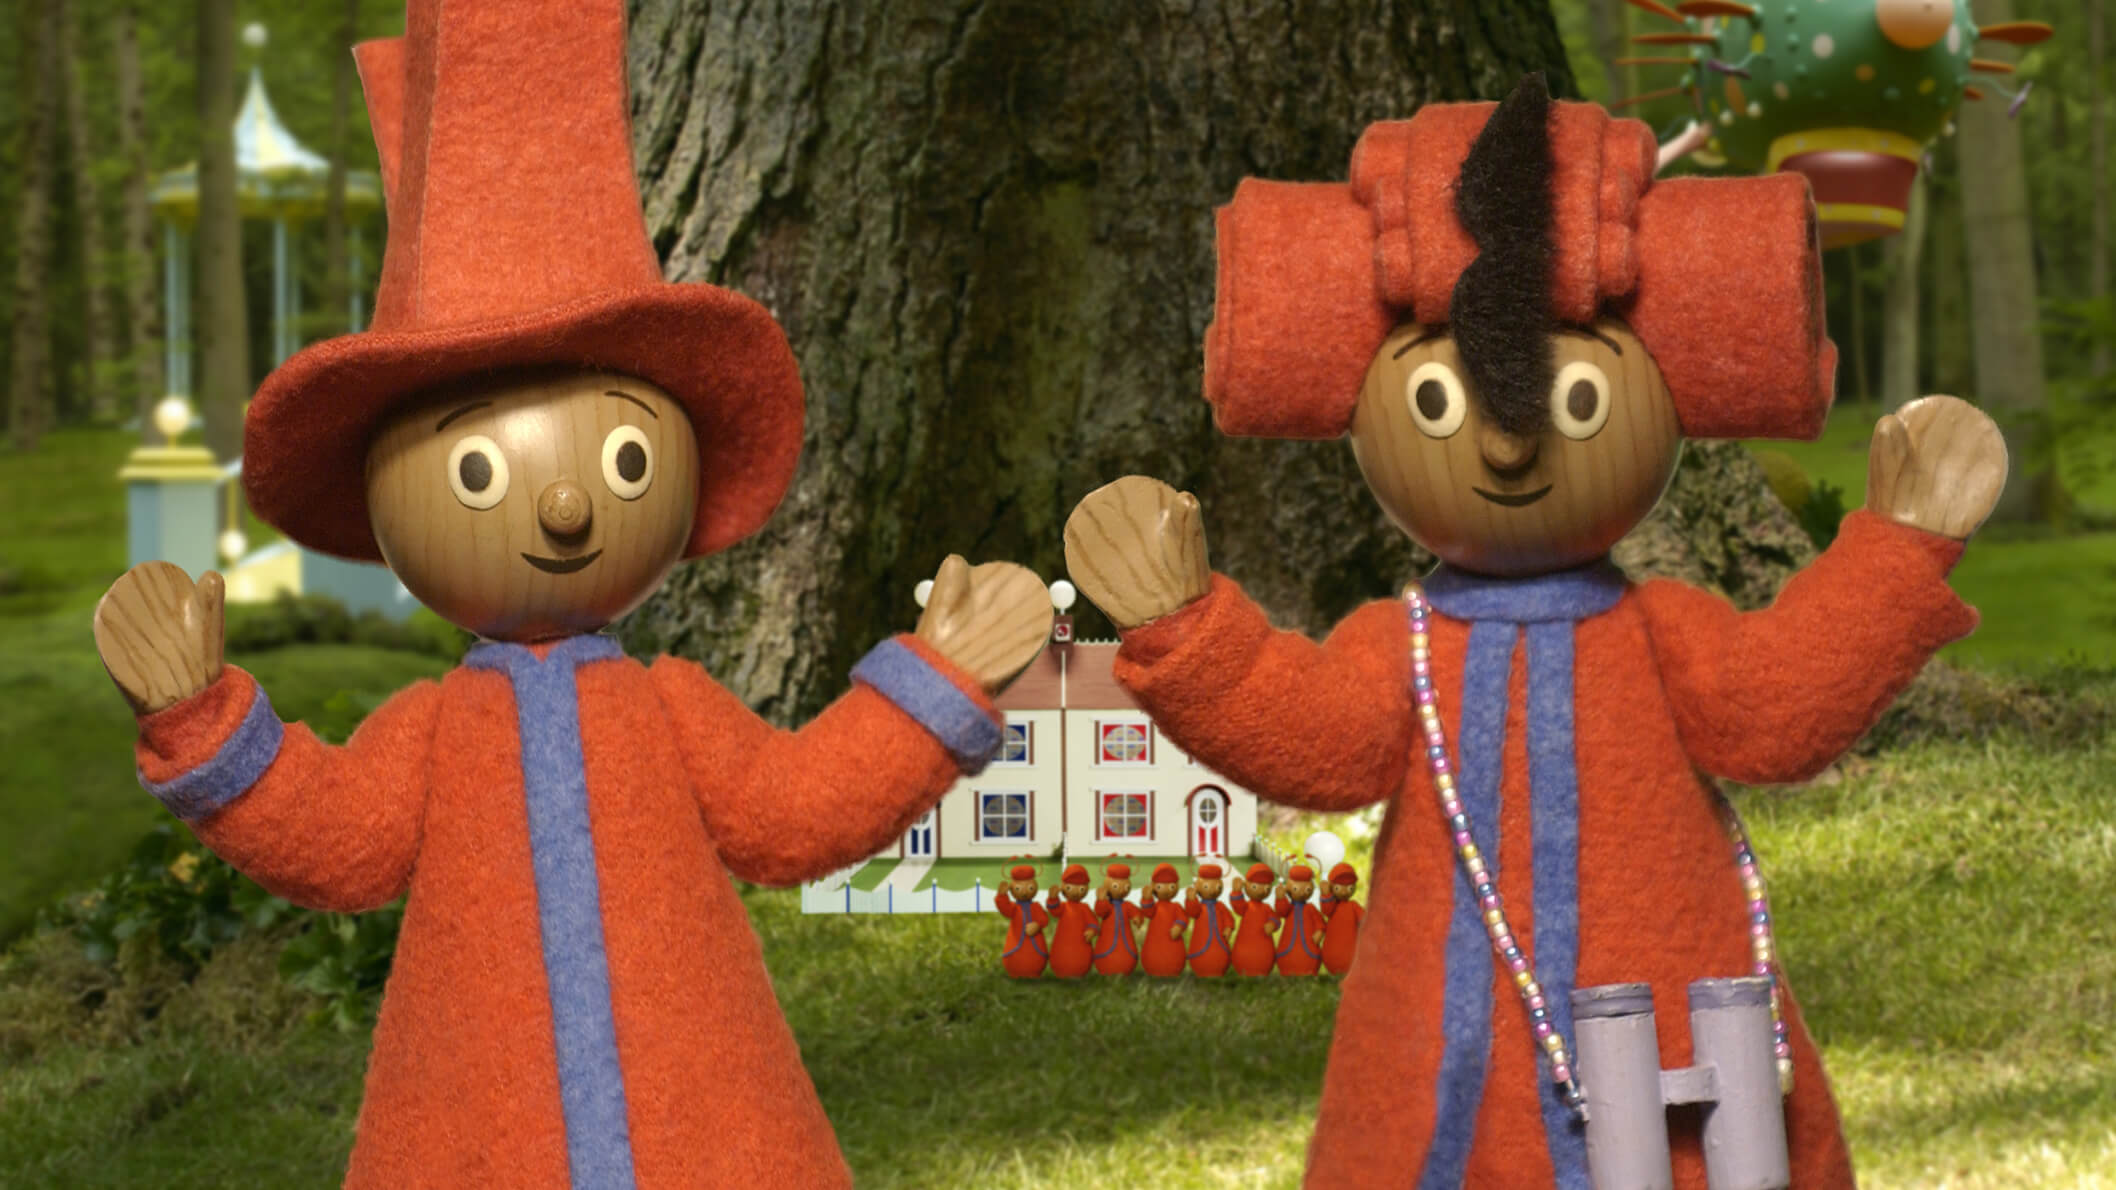 Two wooden characters, wearing red outfits and hats, holding their hands up in front of a big tree.